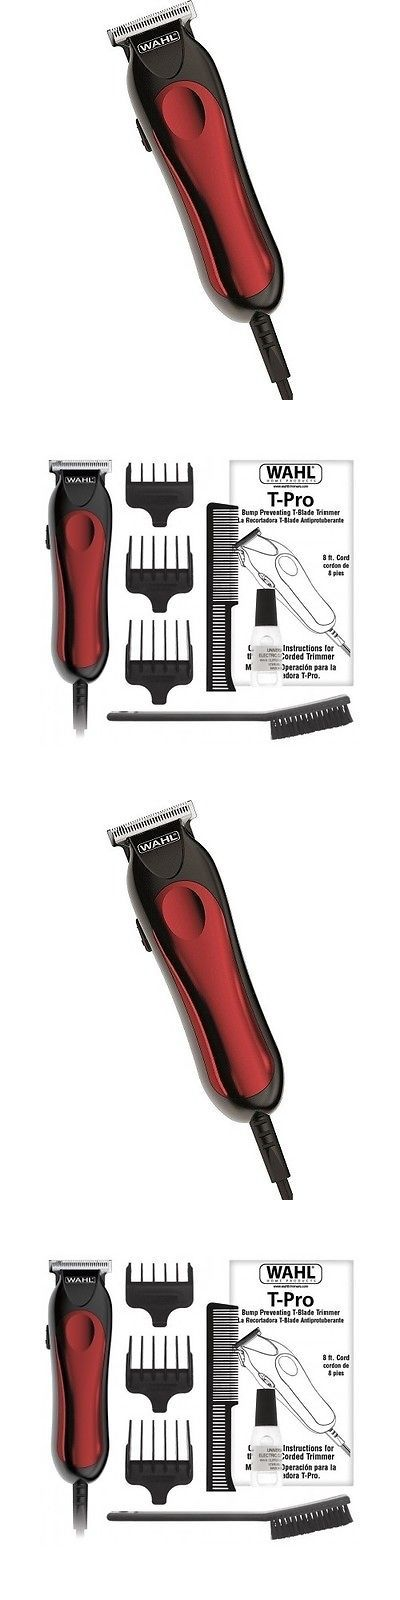 Shaving: T Wahl Trimmer Pro Hair Corded Blade Kit Beard Clipper Shaver Shave Professional -> BUY IT NOW ONLY: $32.51 on eBay!